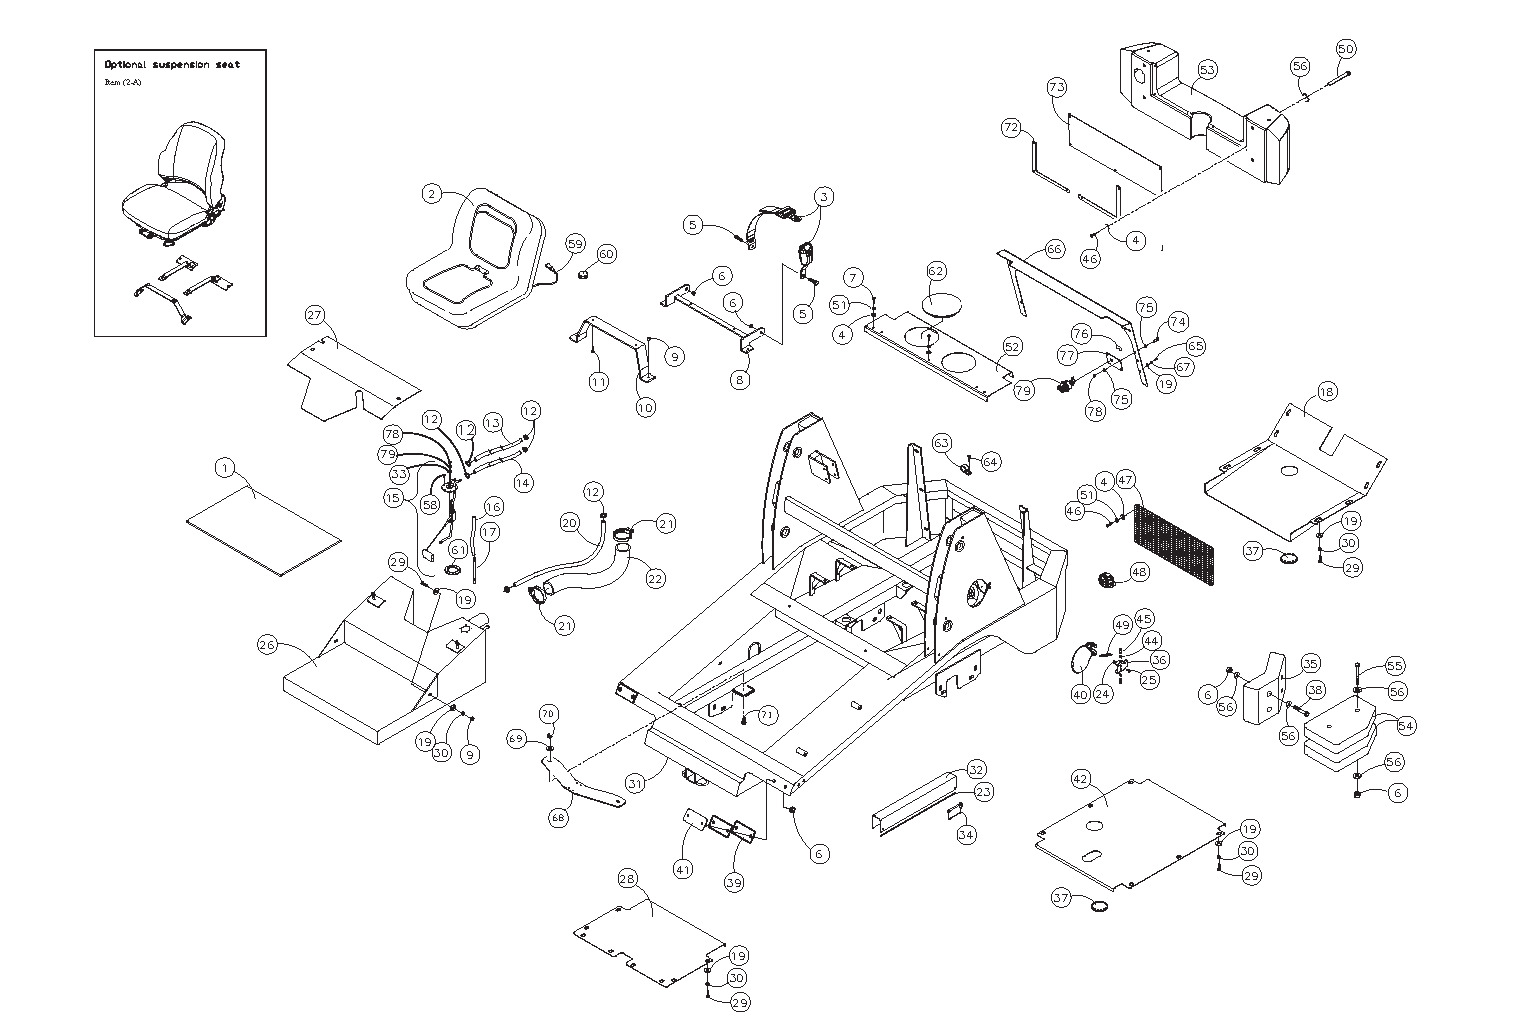 Diagram 4-A Chassis Assembly